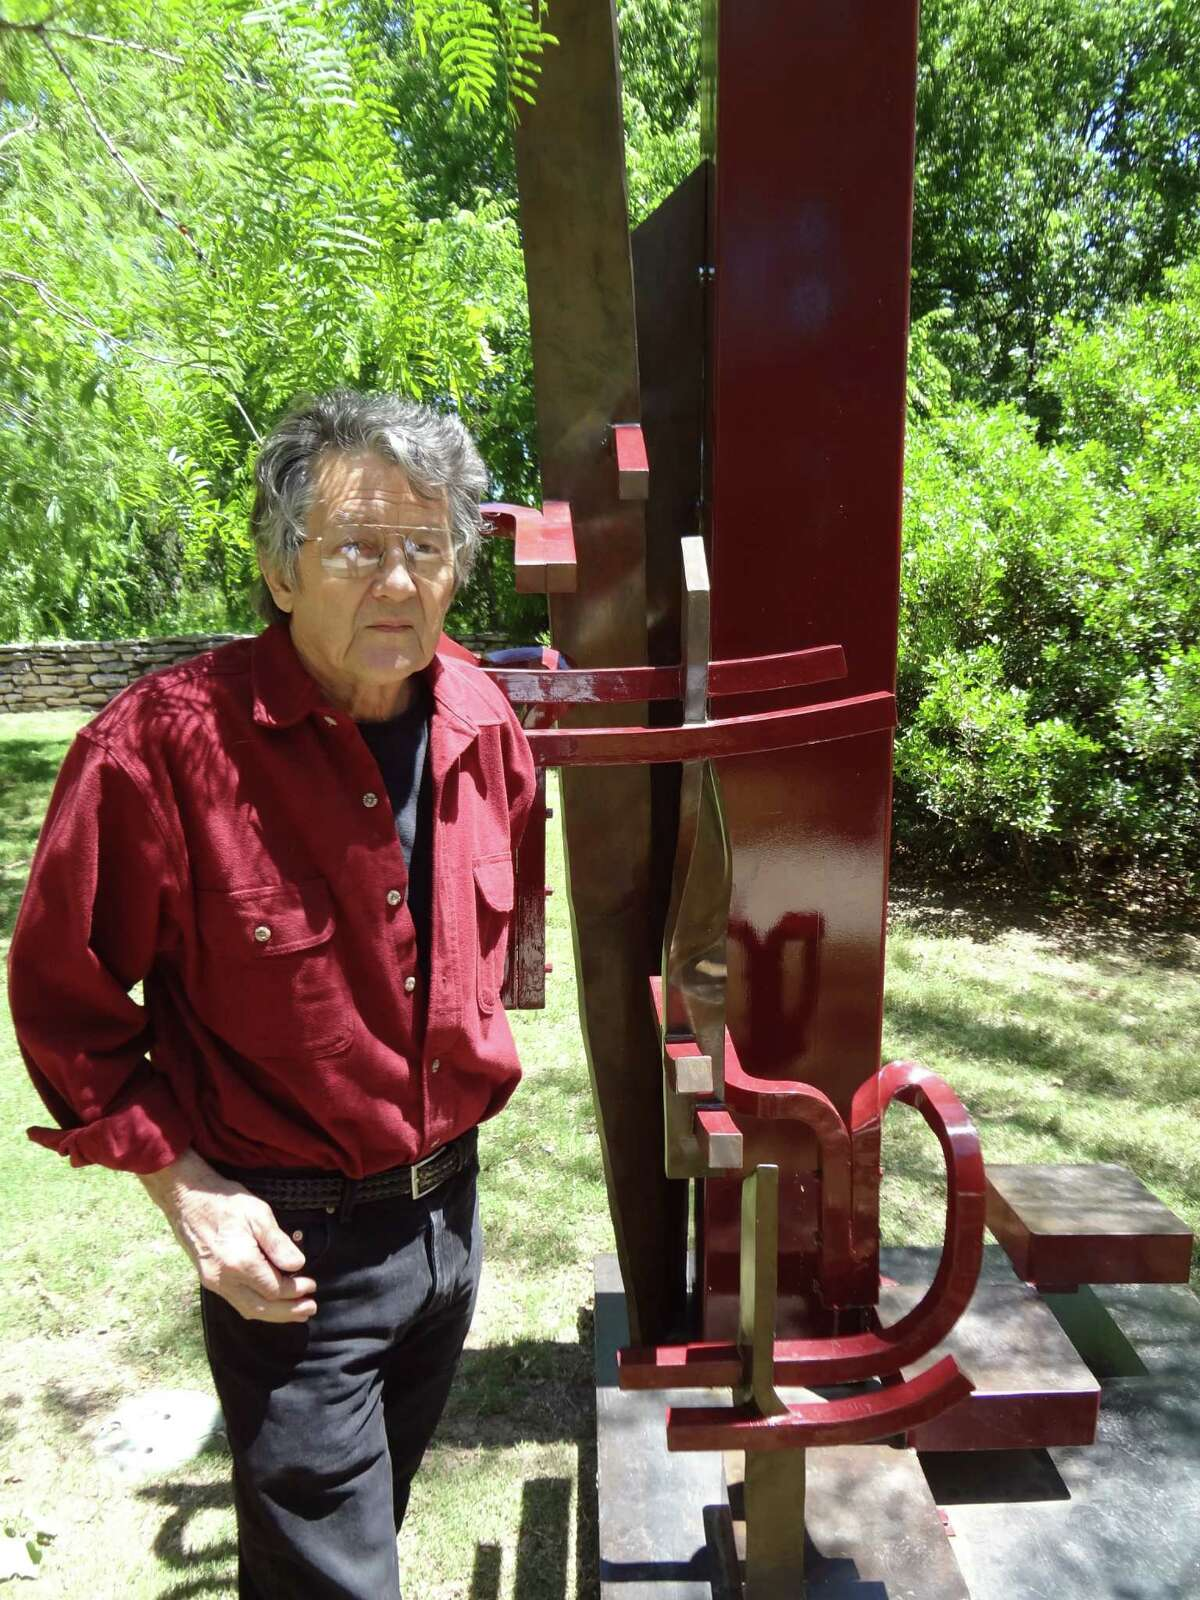 Houston sculptor Ben Woitena, 71, created